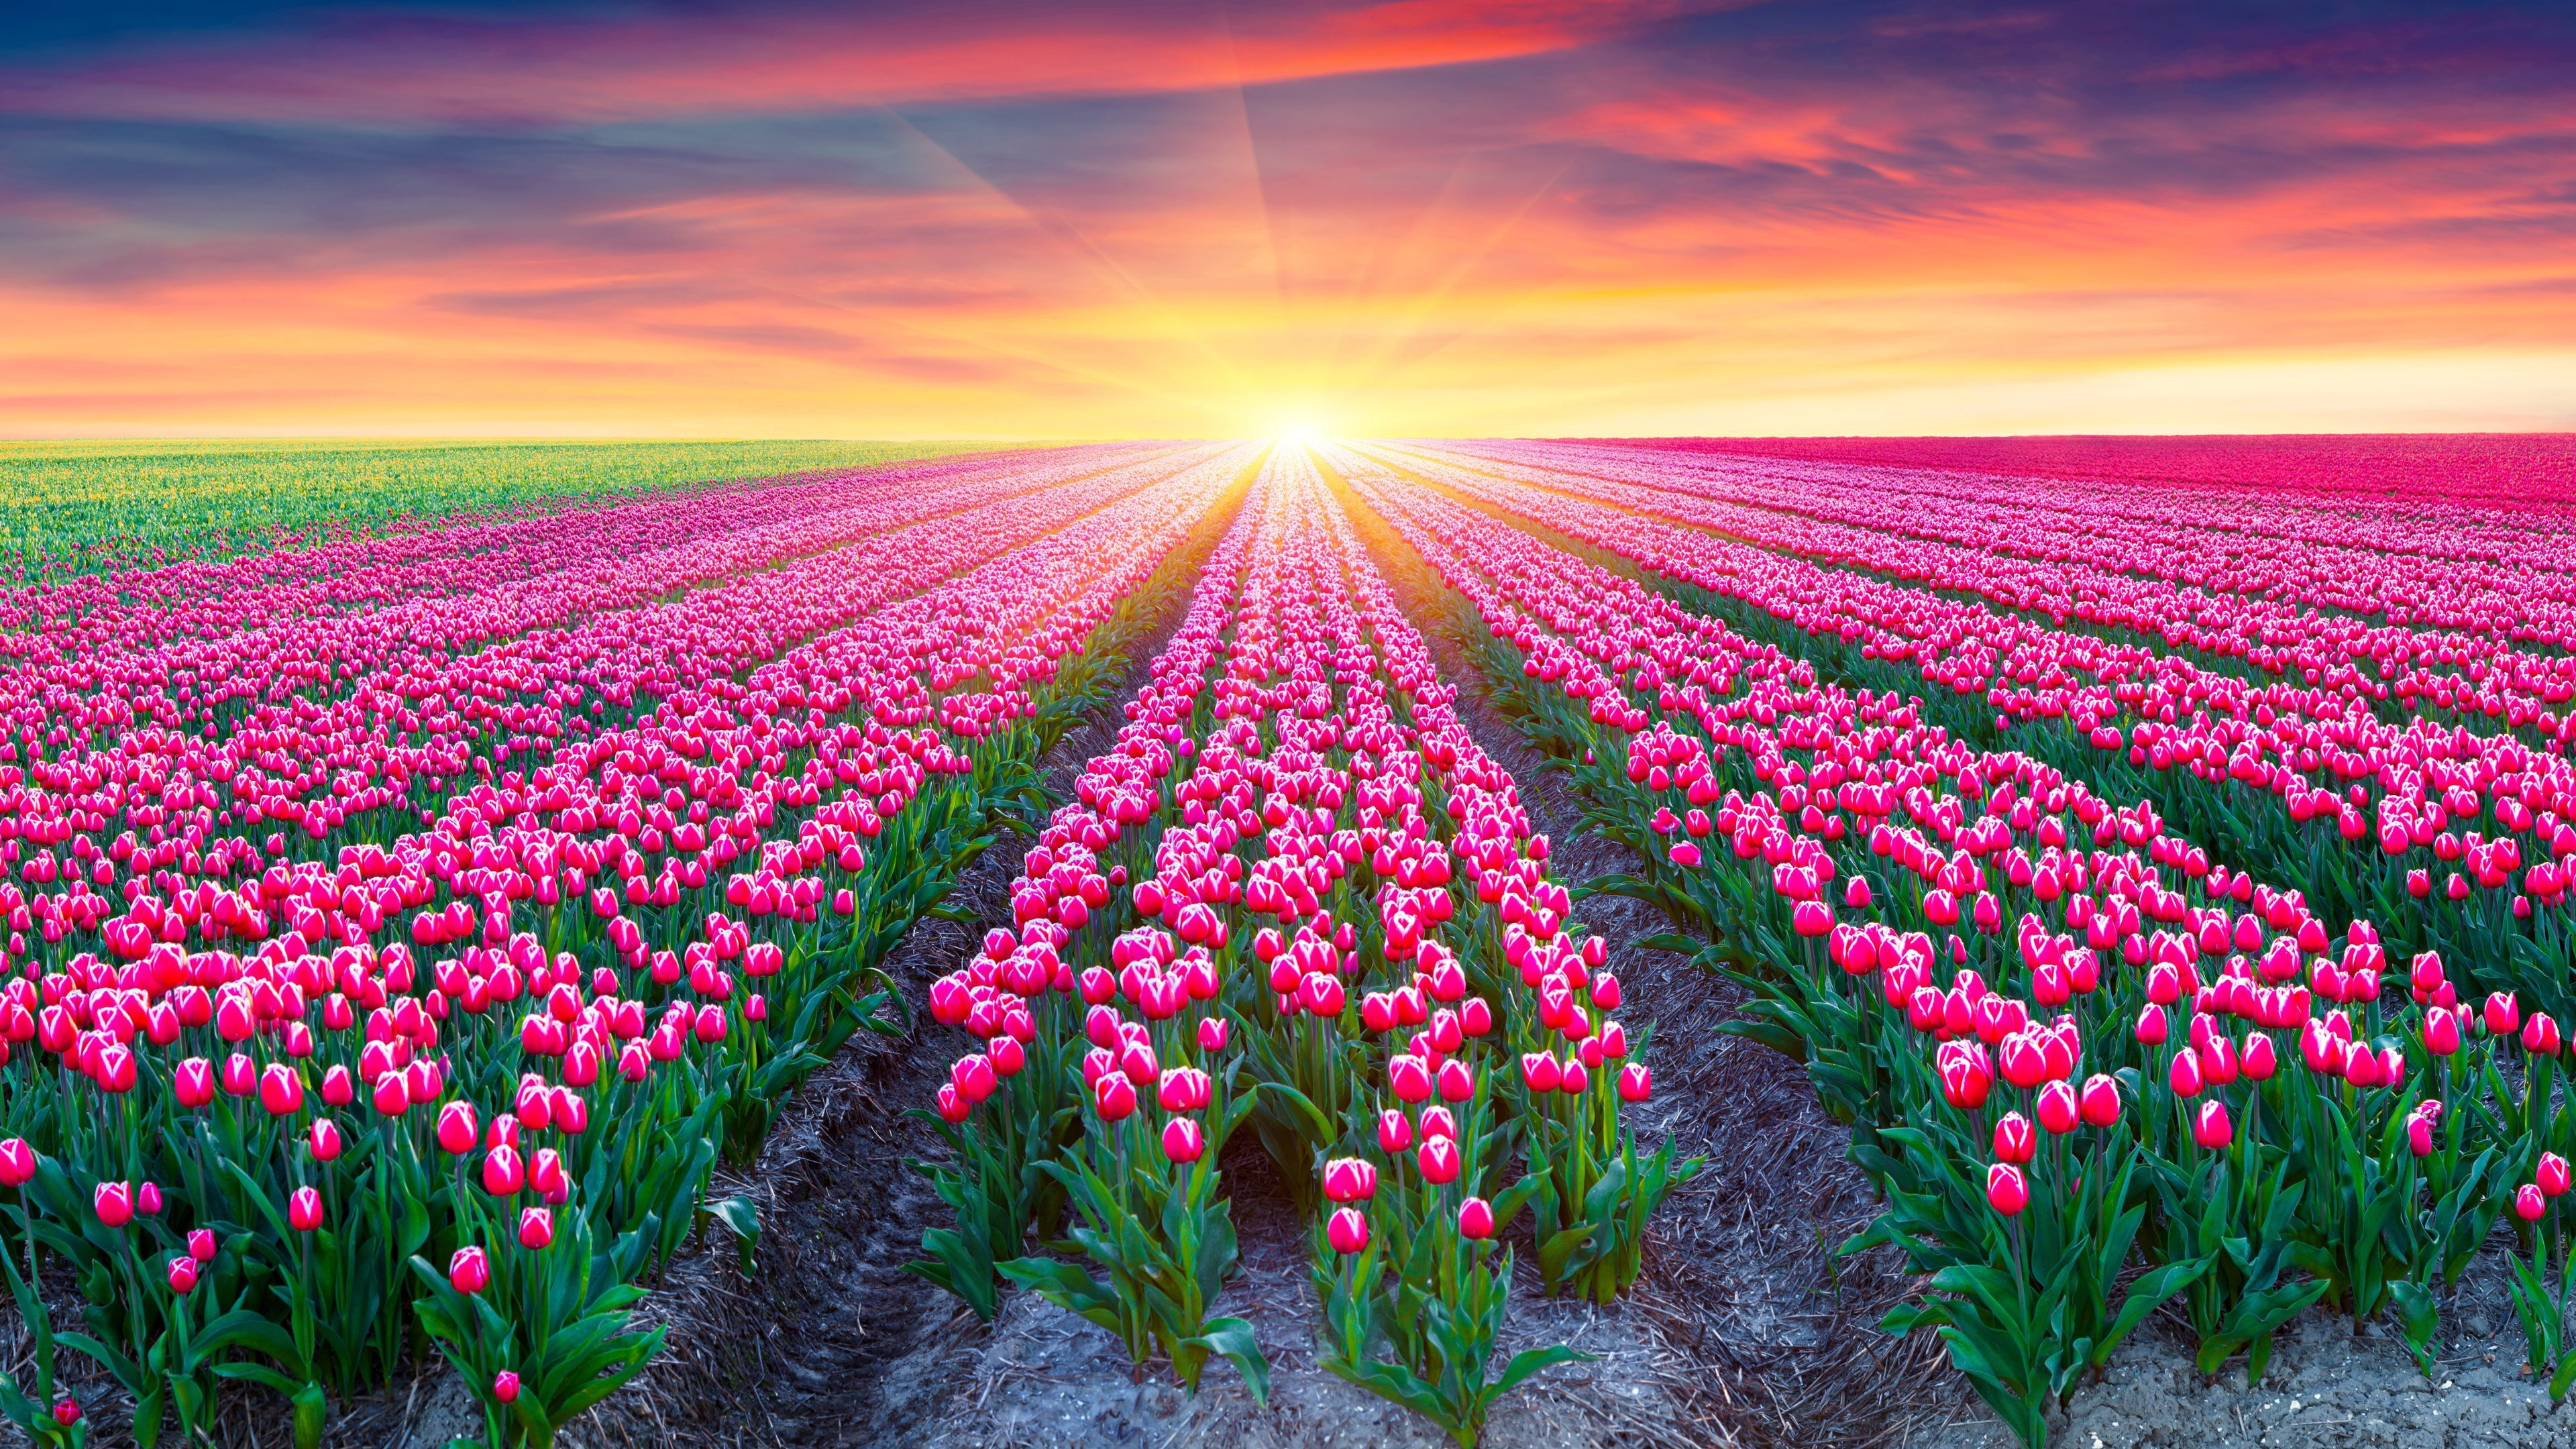 Flower Fields Wallpapers Images Photos Pictures Backgrounds